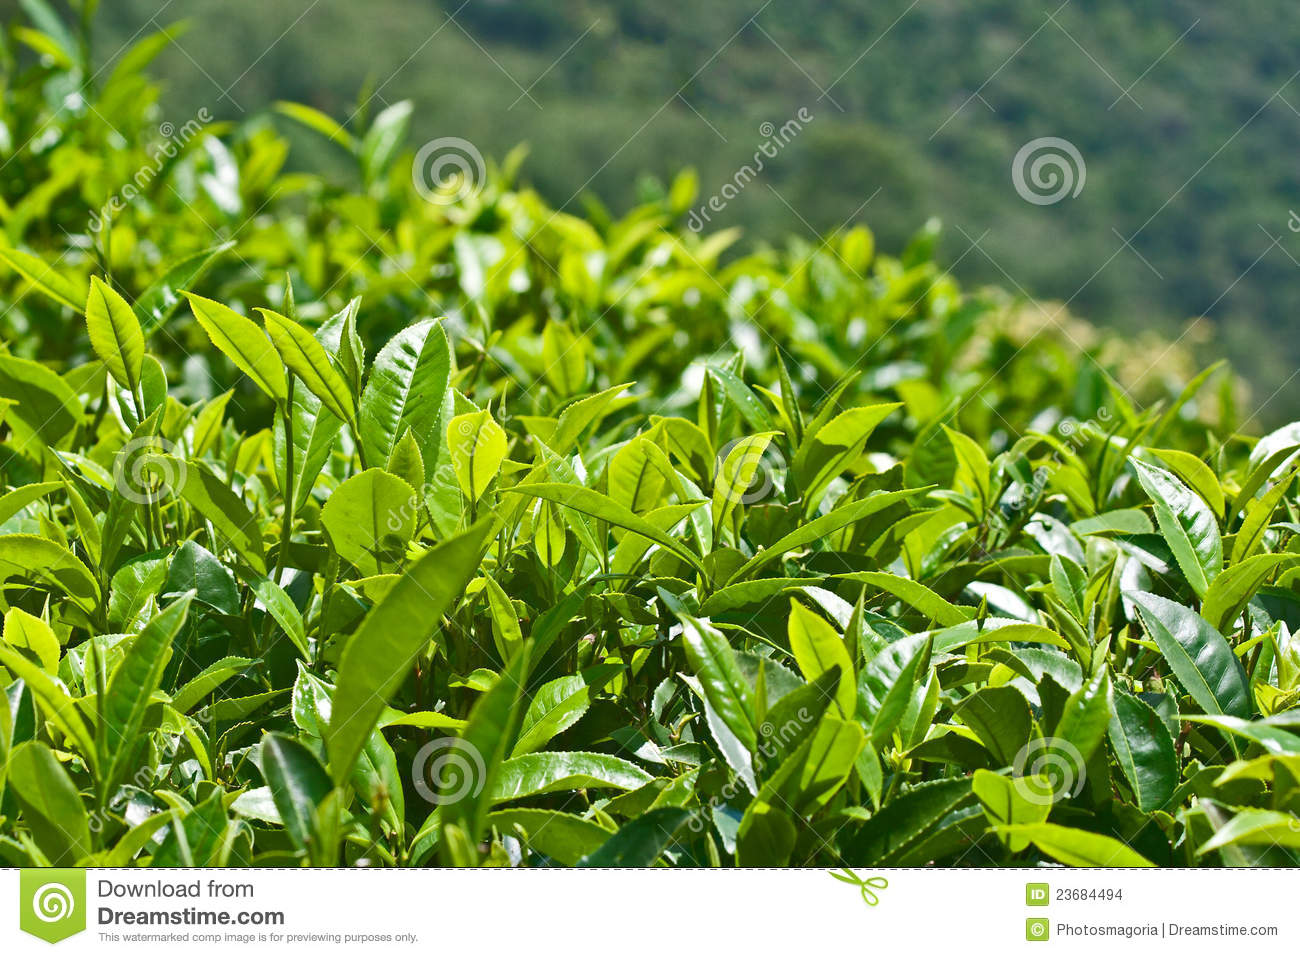 Tea Leaves on mountain plantations in Sri Lanka.